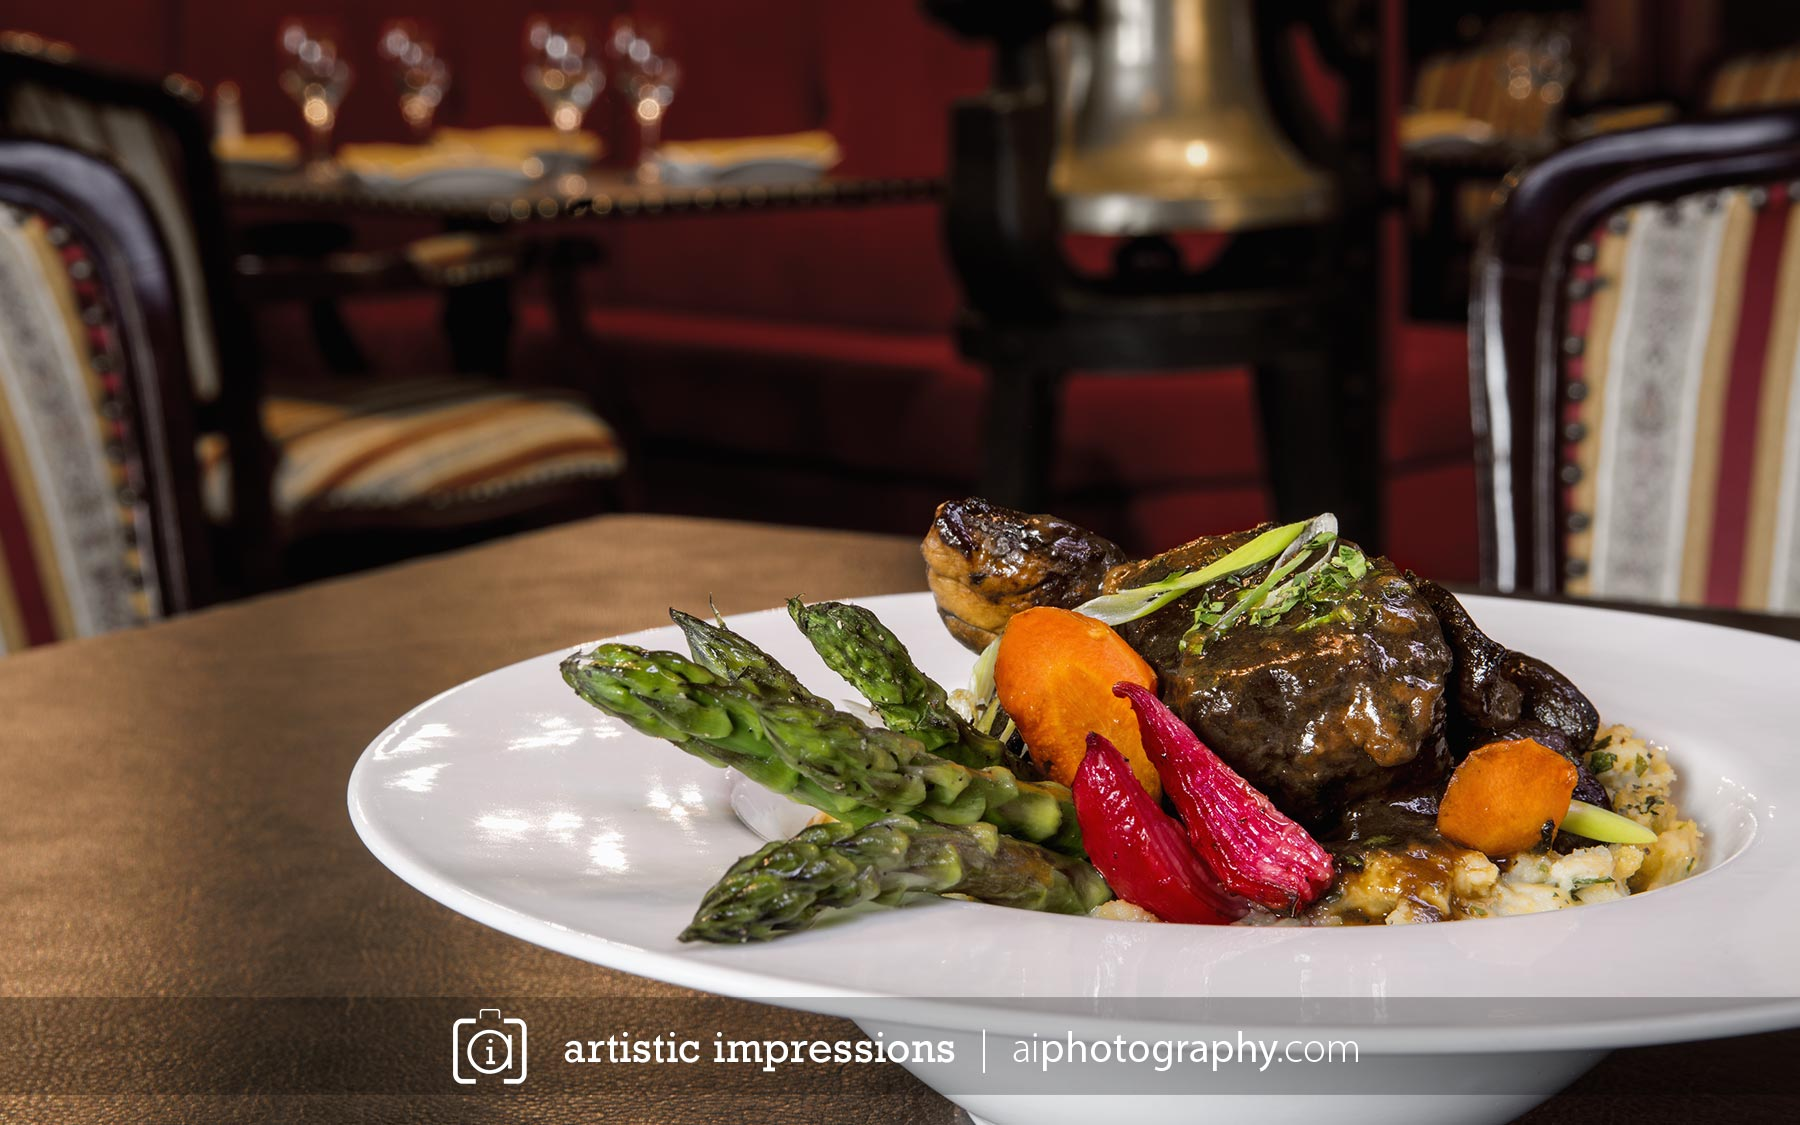 Food Winnipeg photographer portrait commercial  : winnipeg photographer commercial product advertising photography food steal resto gare train bar fine dining bourguignon from aiphotography.com size 1800 x 1125 jpeg 219kB